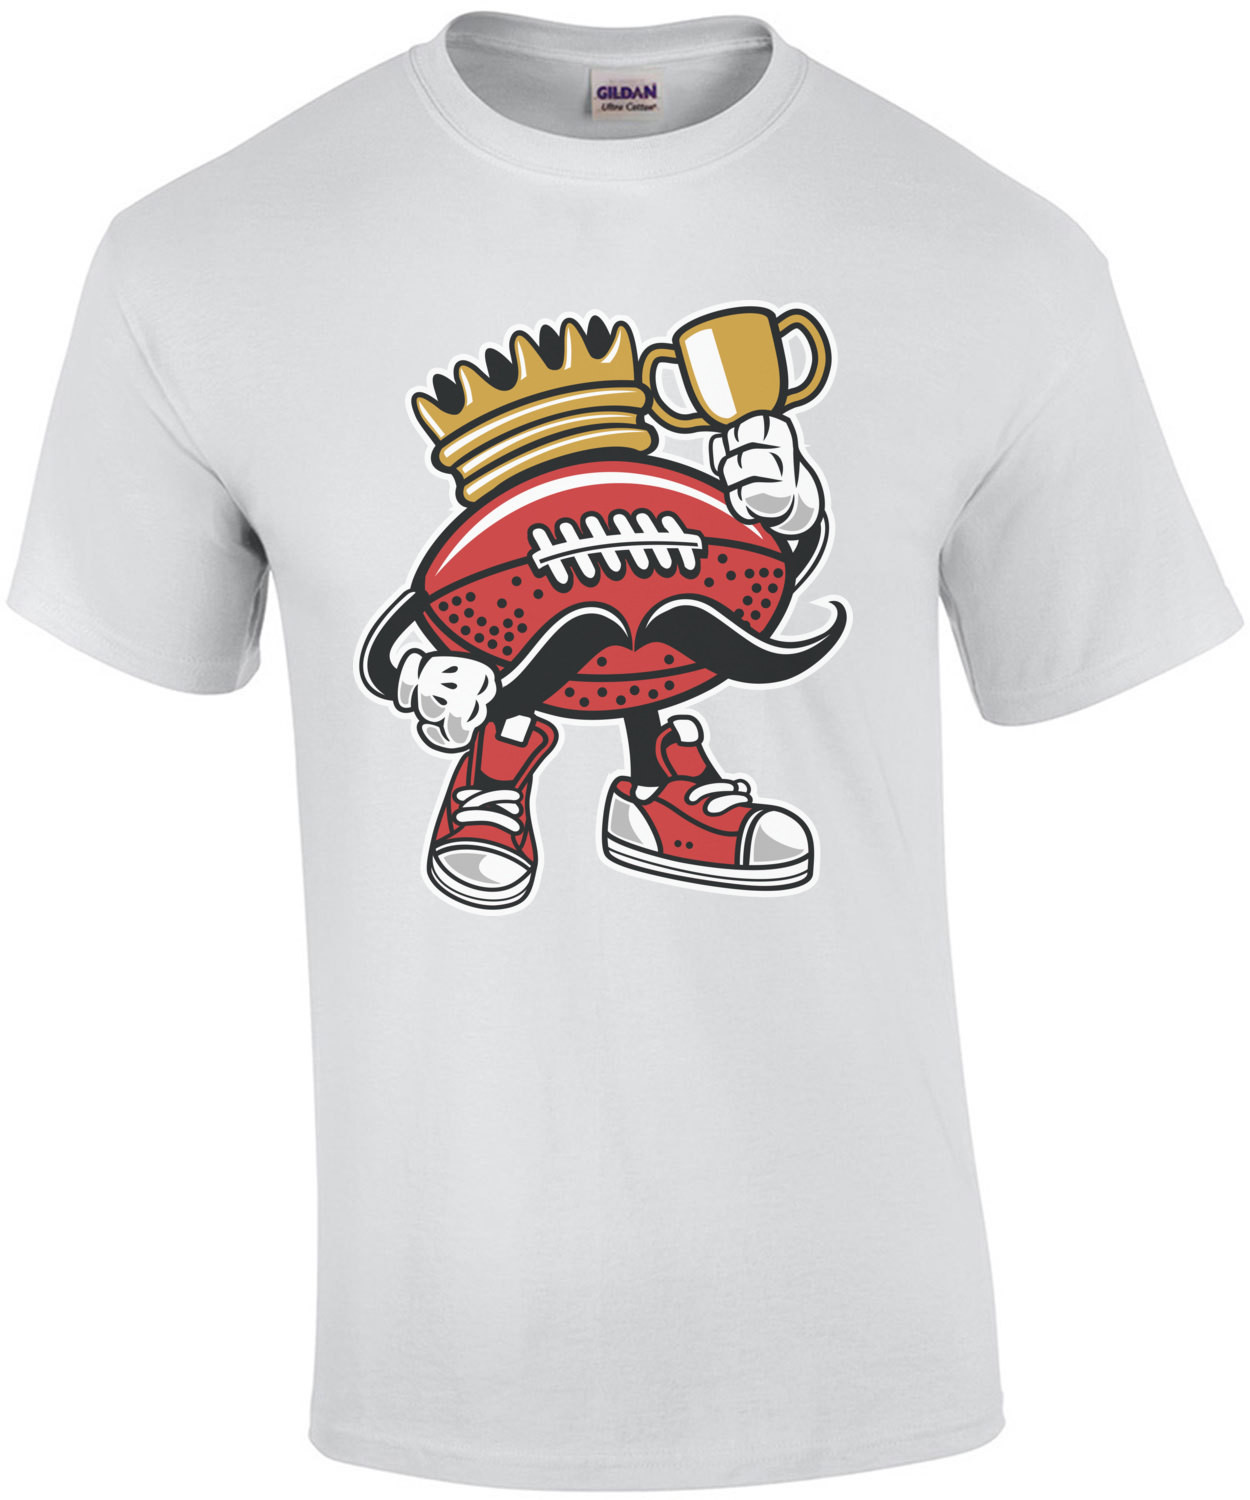 Retro Football King T-Shirt